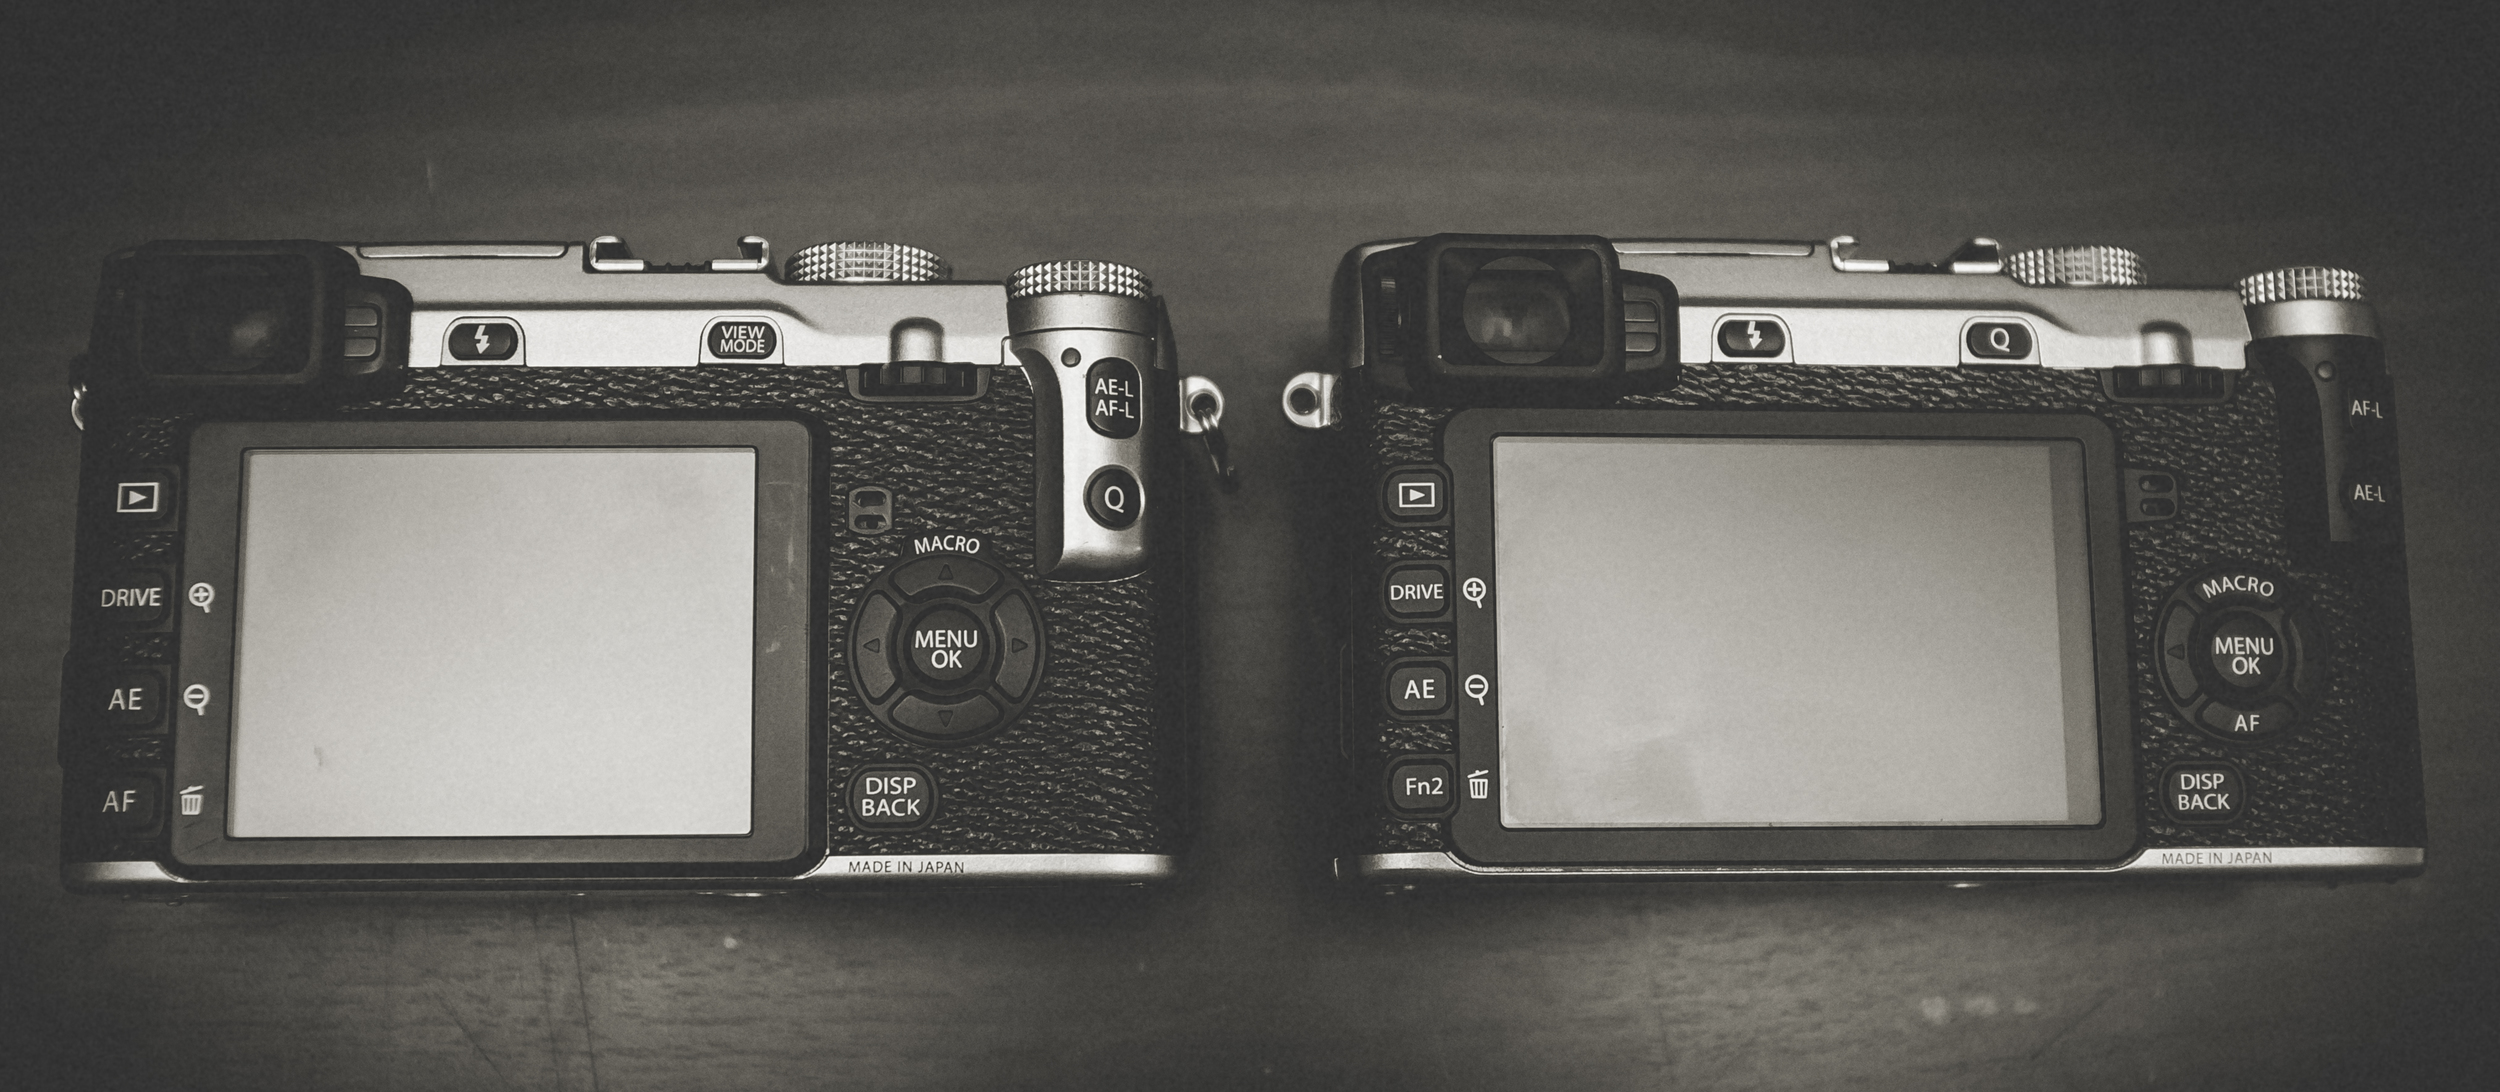 Side by side the Fuji XE1 & XE2 are almost identical but inside the differences are night and day.